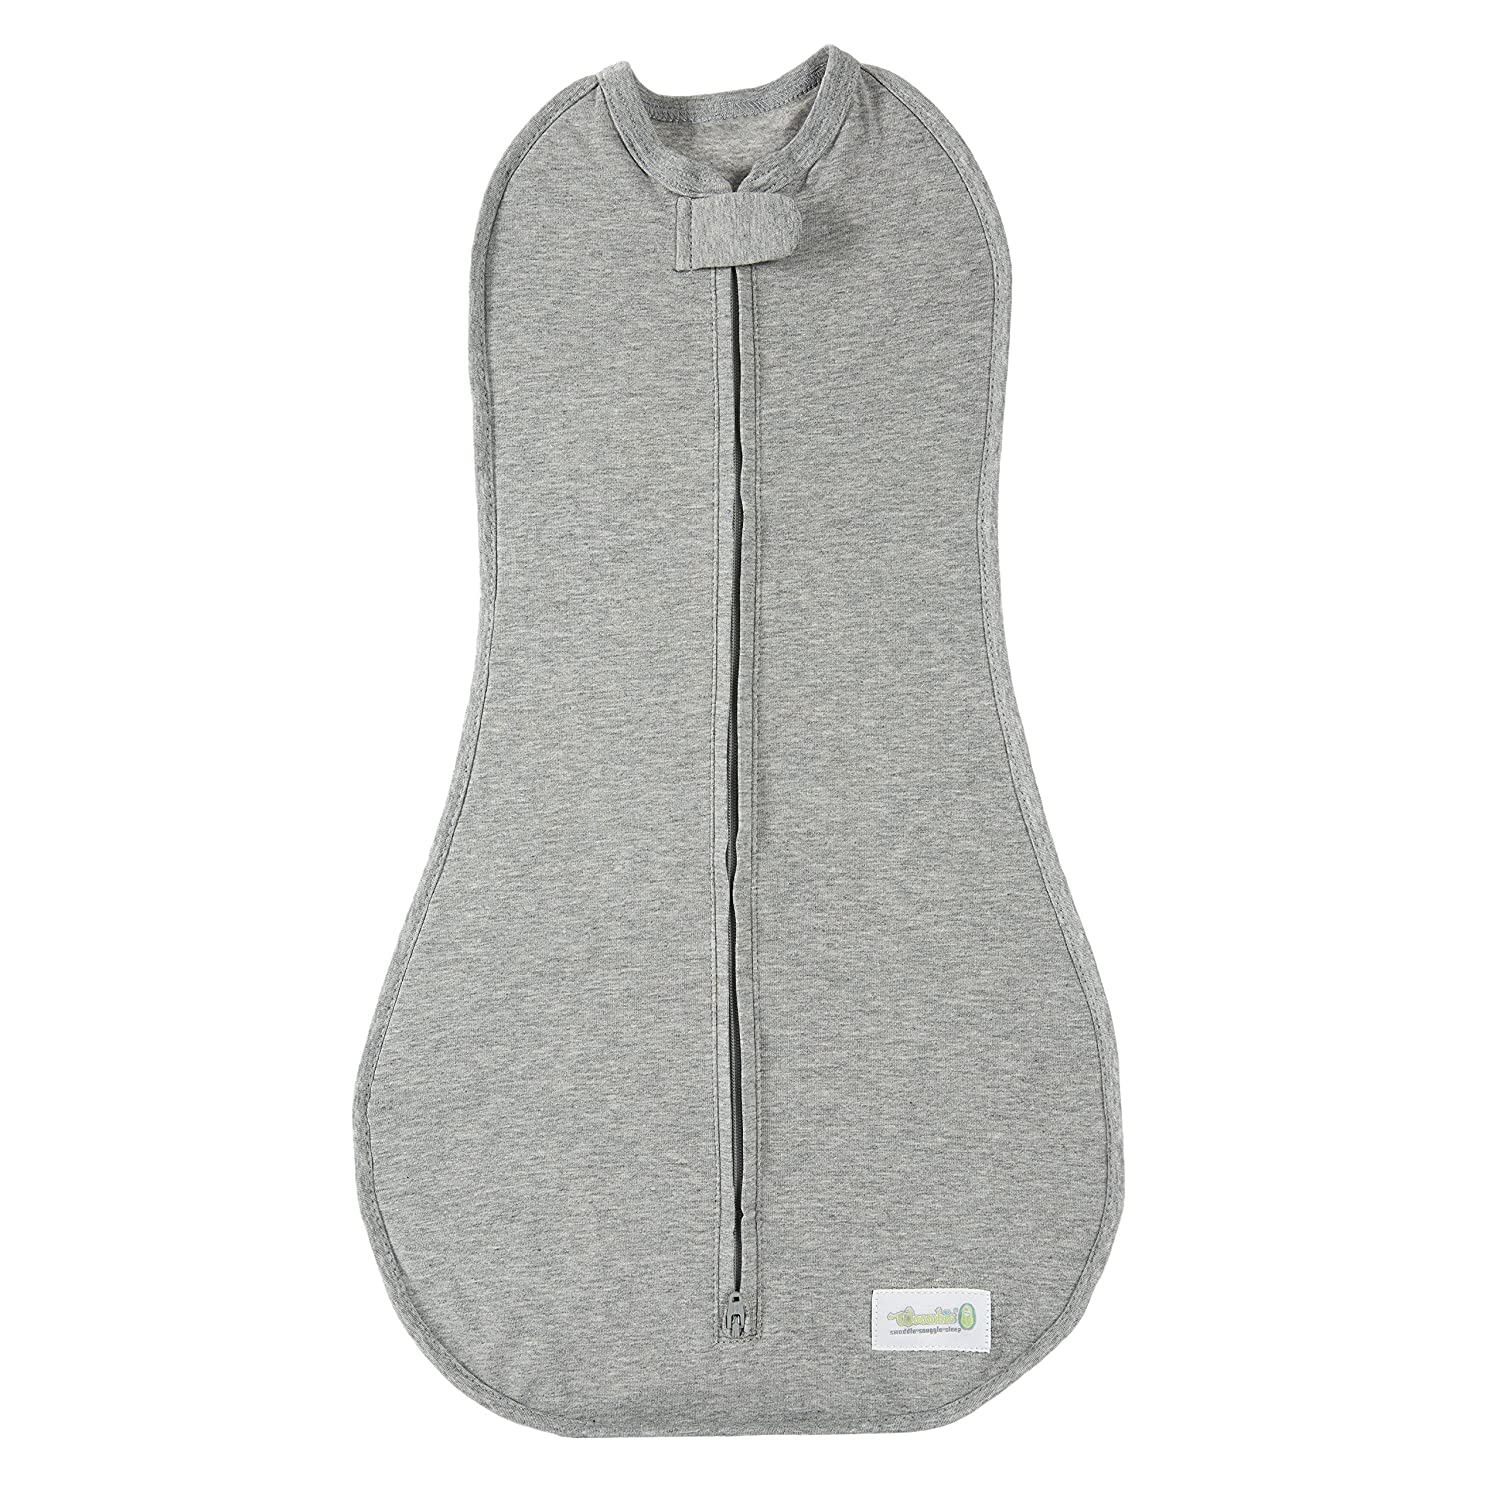 Woombie Original Nursery Swaddling Blanket for Babies up to 3 Months Twilight//Heathered Gray, 5-13 lbs